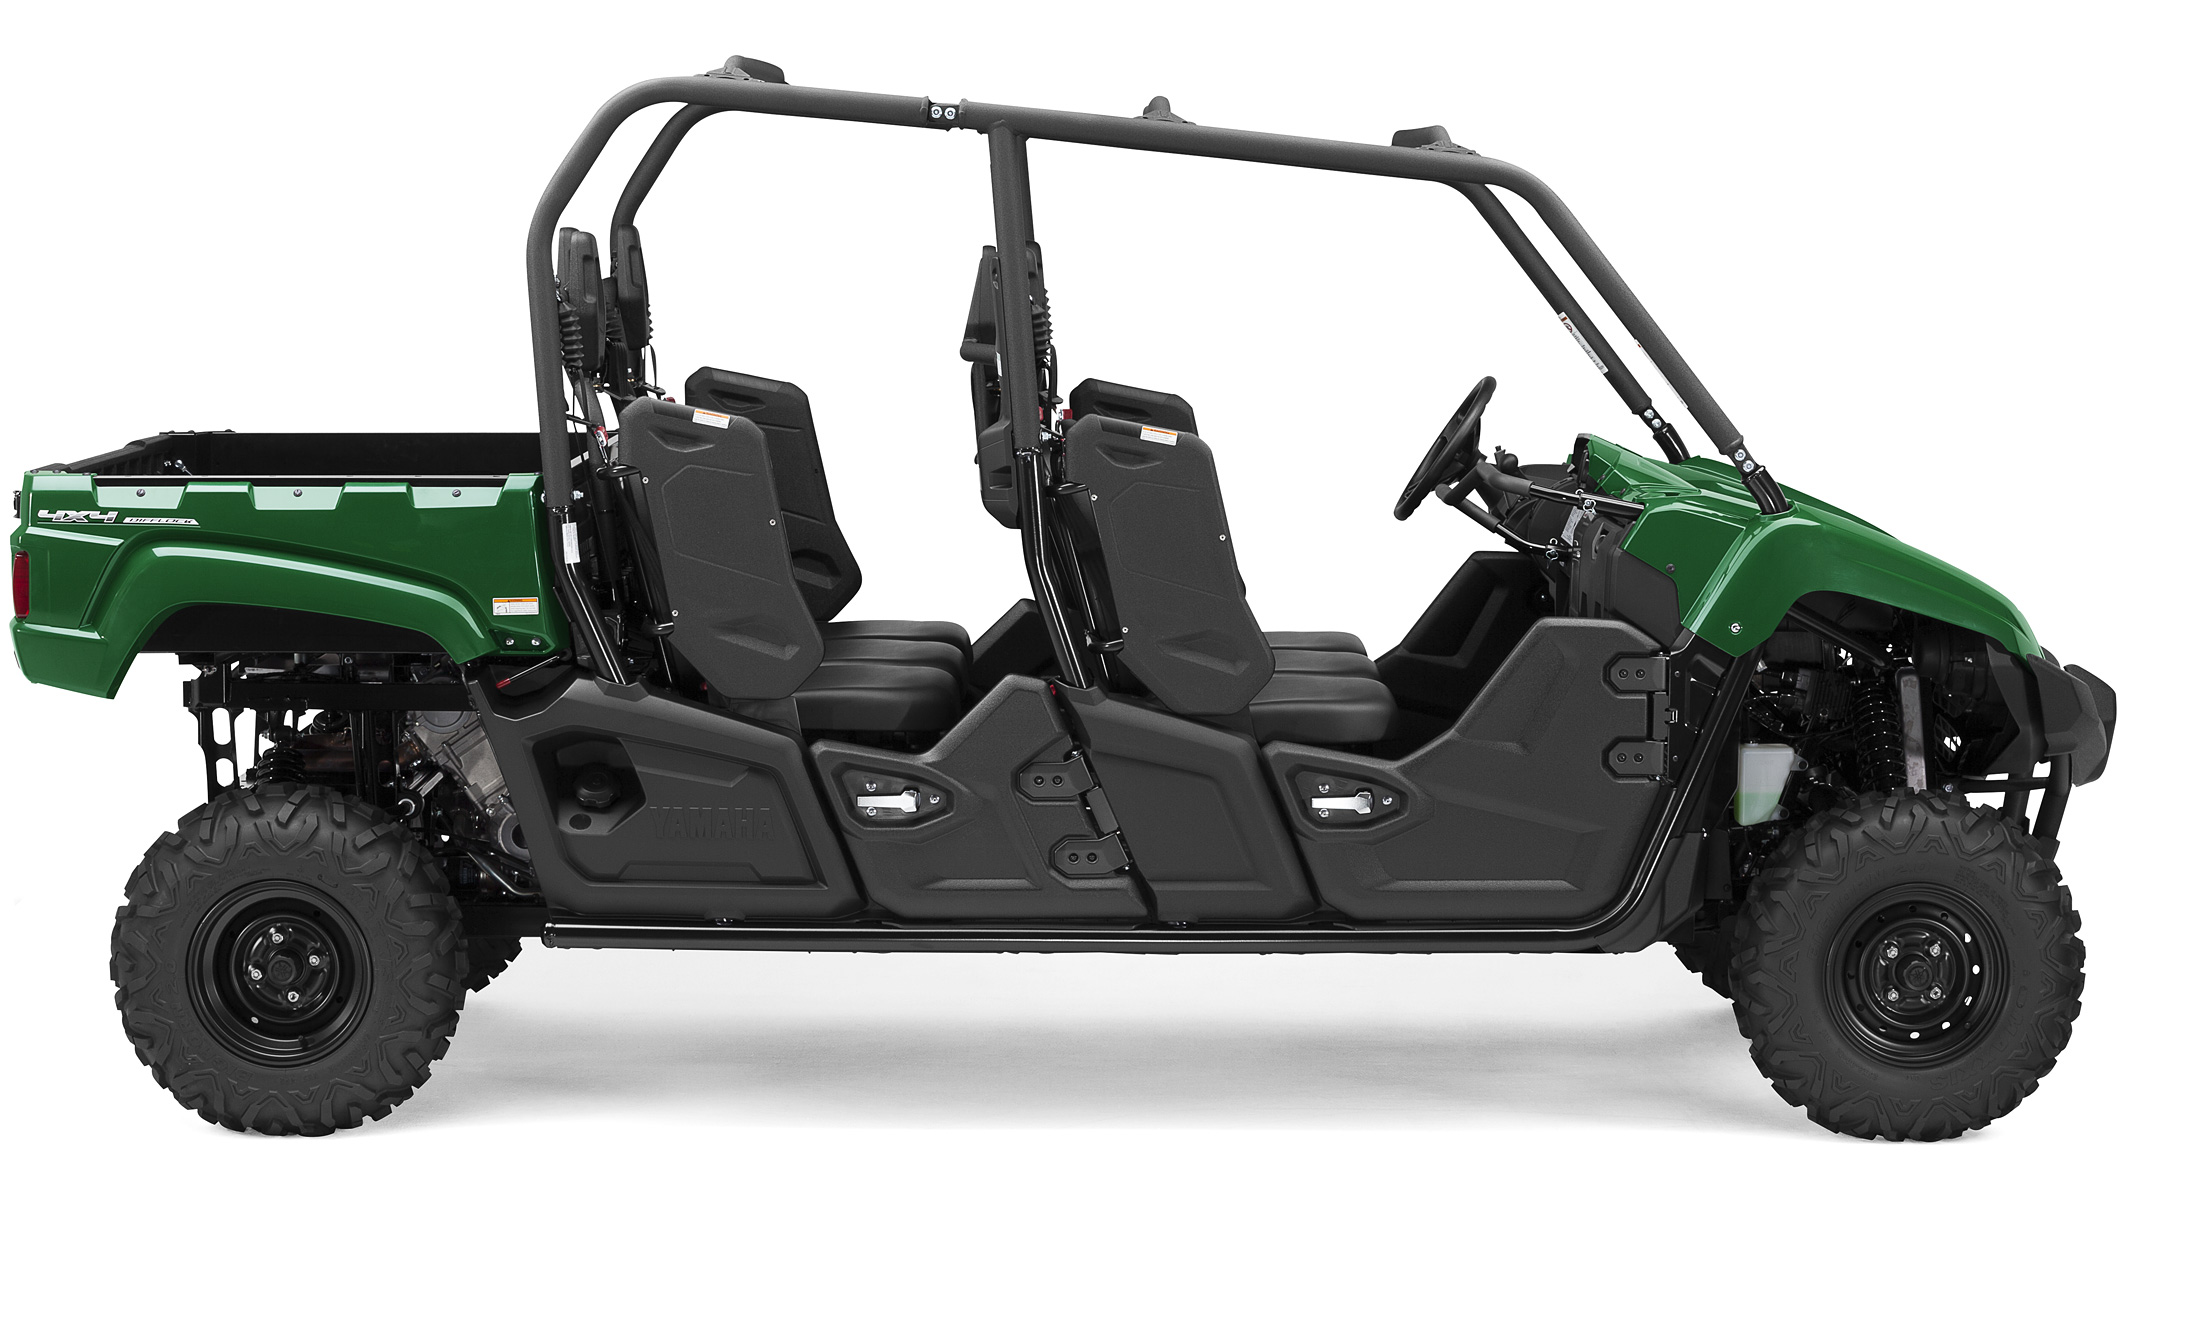 2017 Yamaha Viking Vi Eps Utility Side By Side 360 View